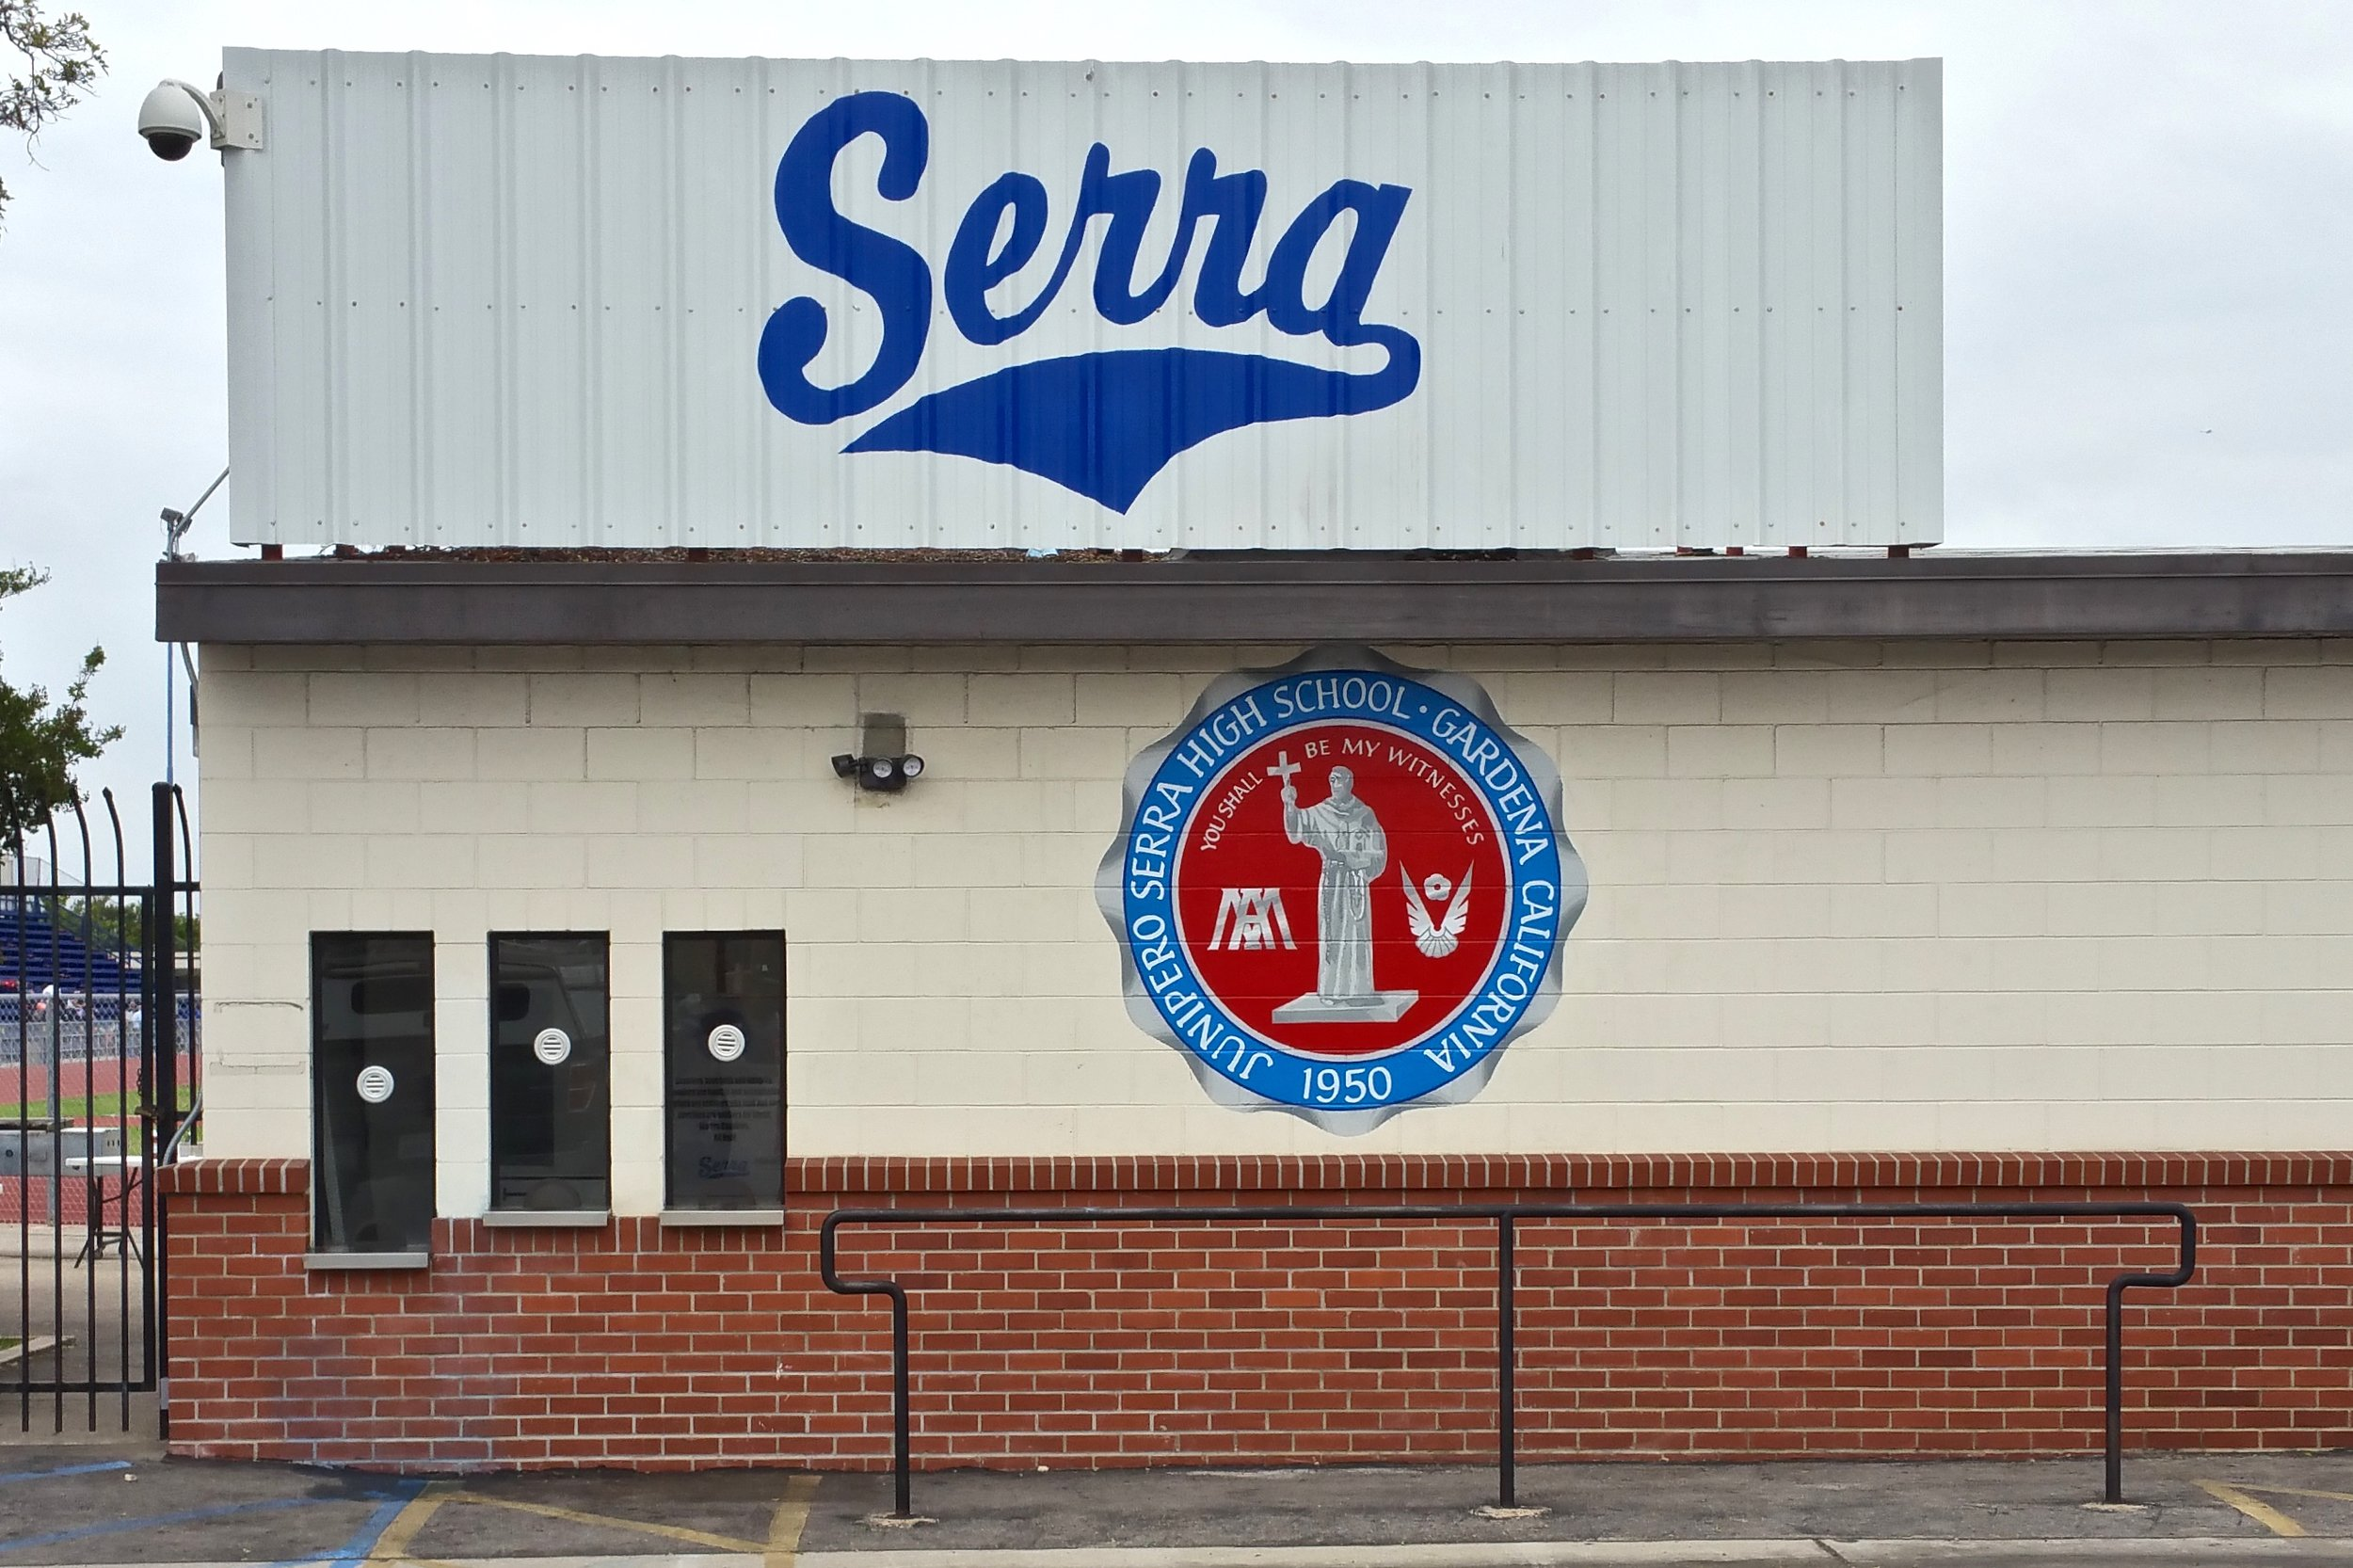 SERRA TICKETBOOTH PAINTED GRAPHICS